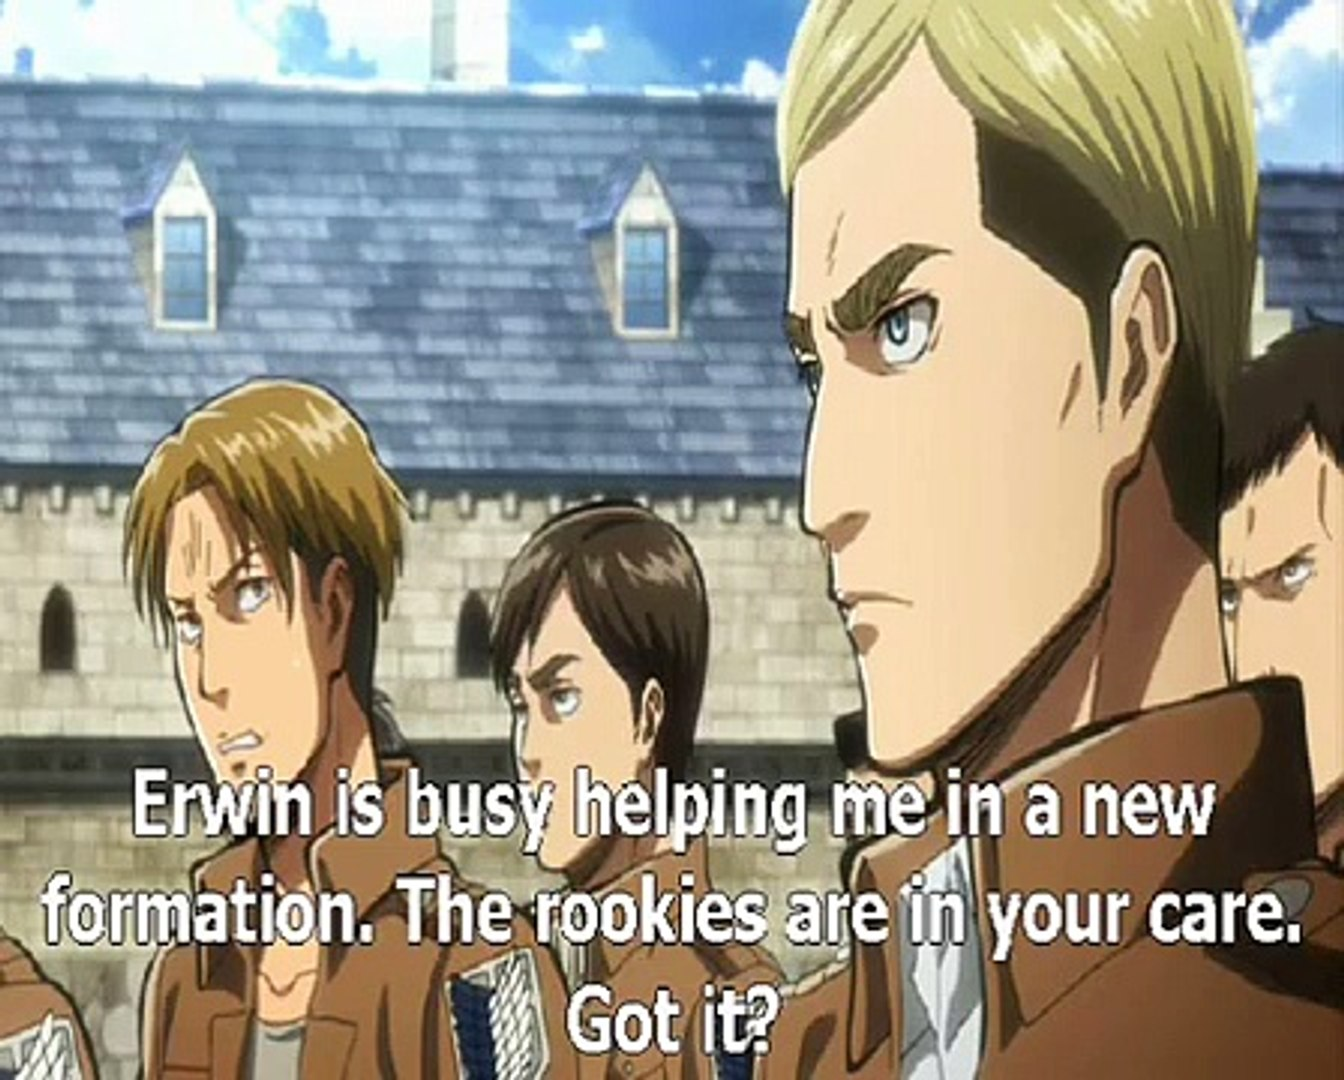 Attack On Titan 進撃の巨人 - A choice with no regrets 2 Part 1 (Eng Subtitles)